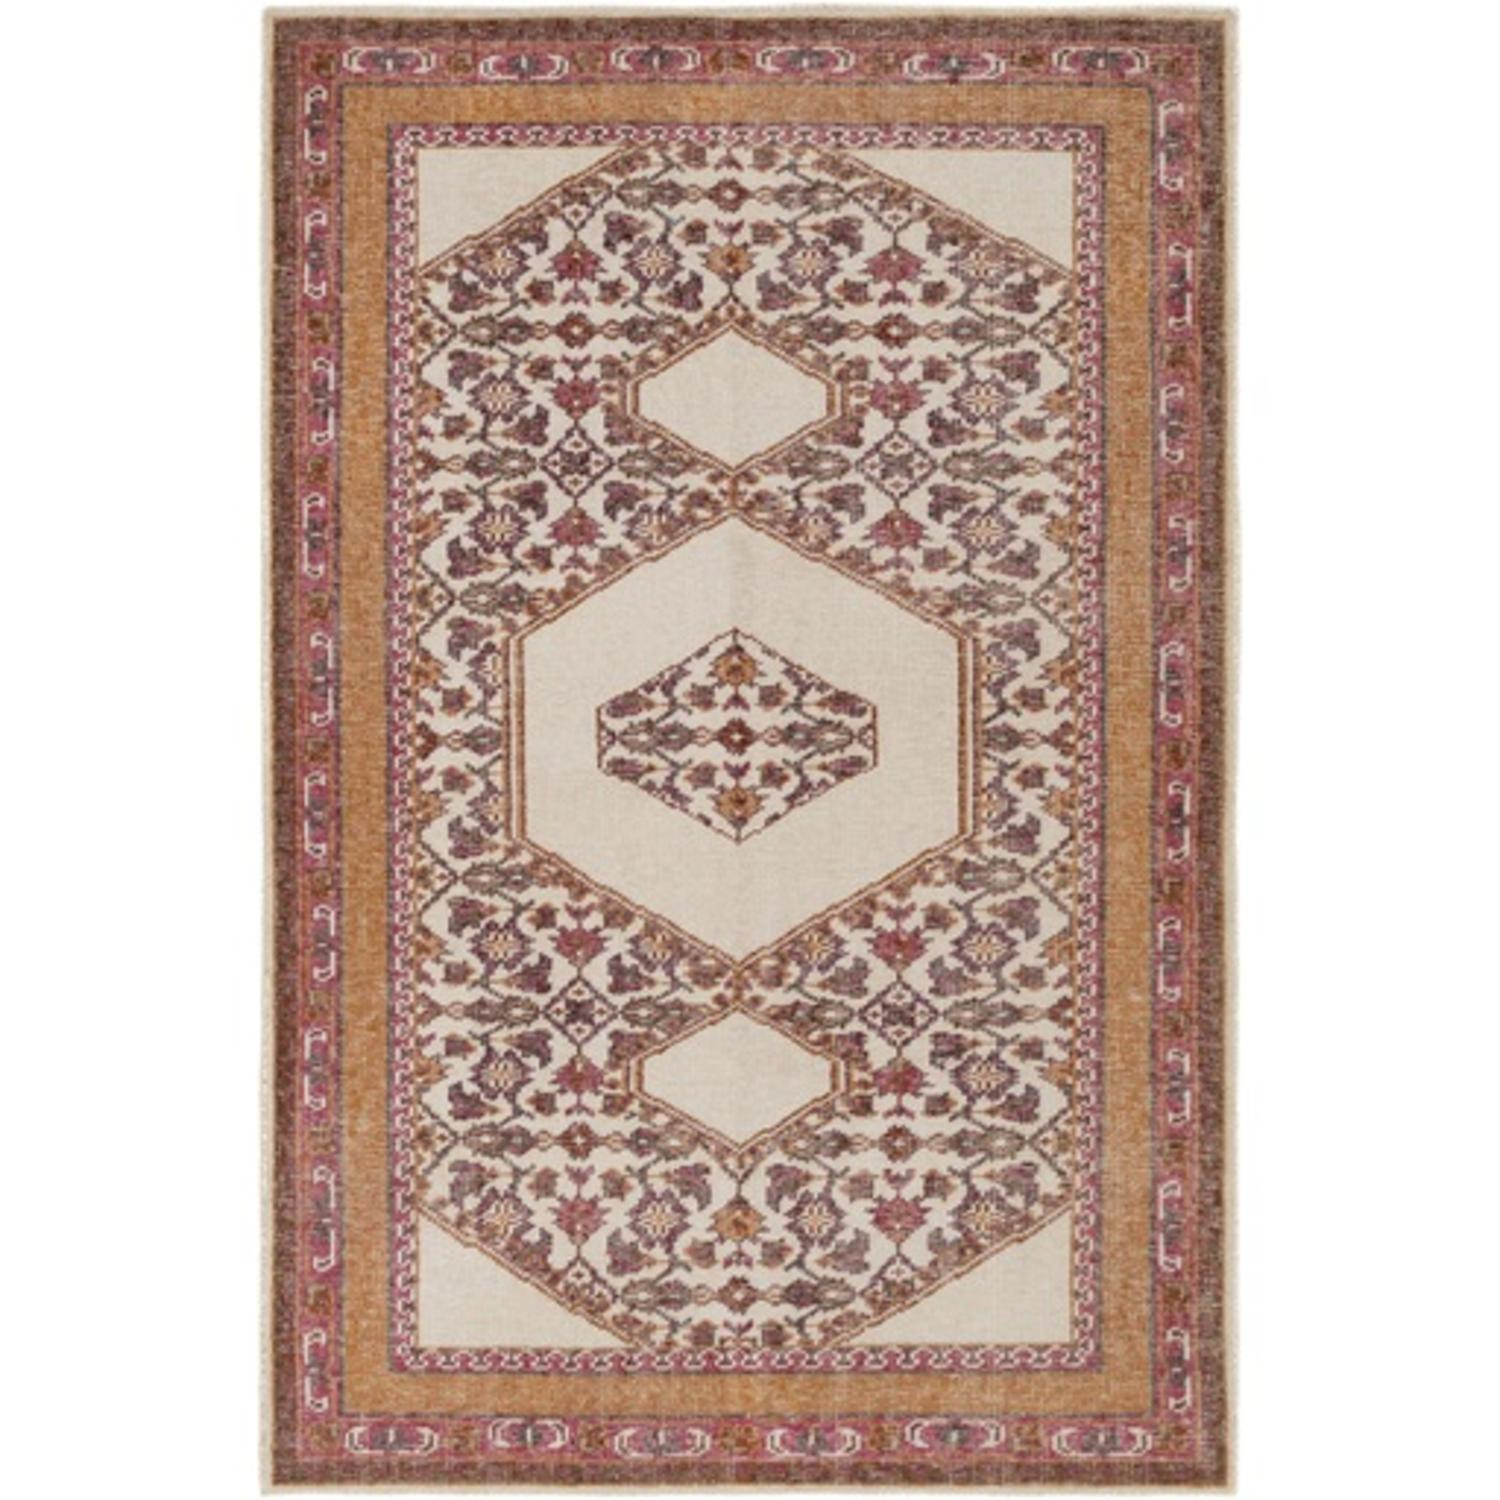 8' x 11' Crop Art Caramel Brown and Rose Pink Hand Knotted Wool Area Rug